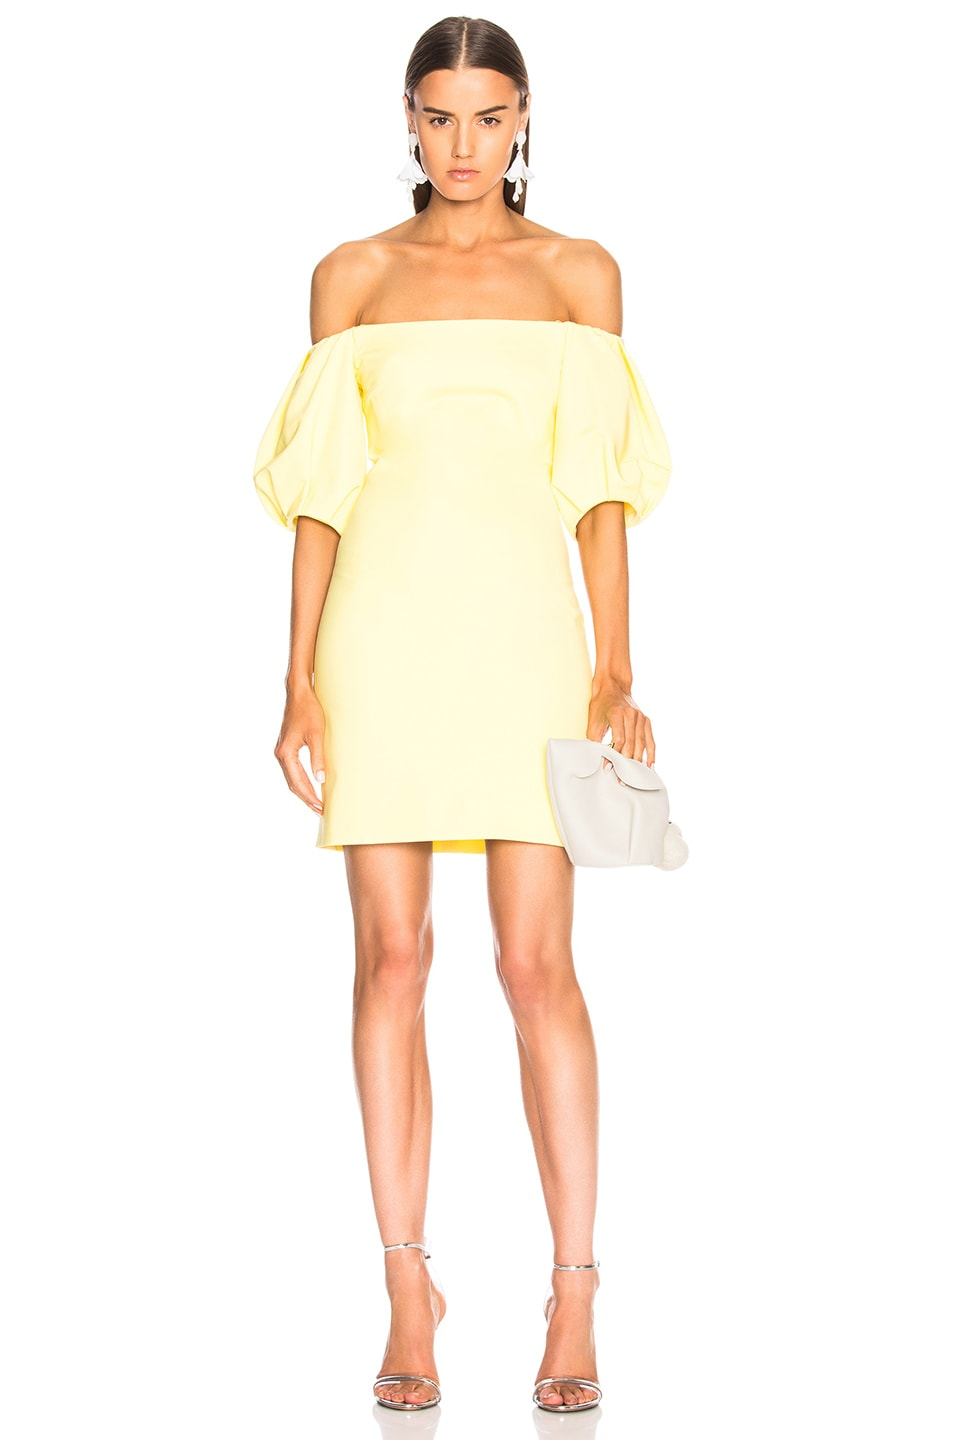 Cushnie et Ochs Silvia Dress in Yellow